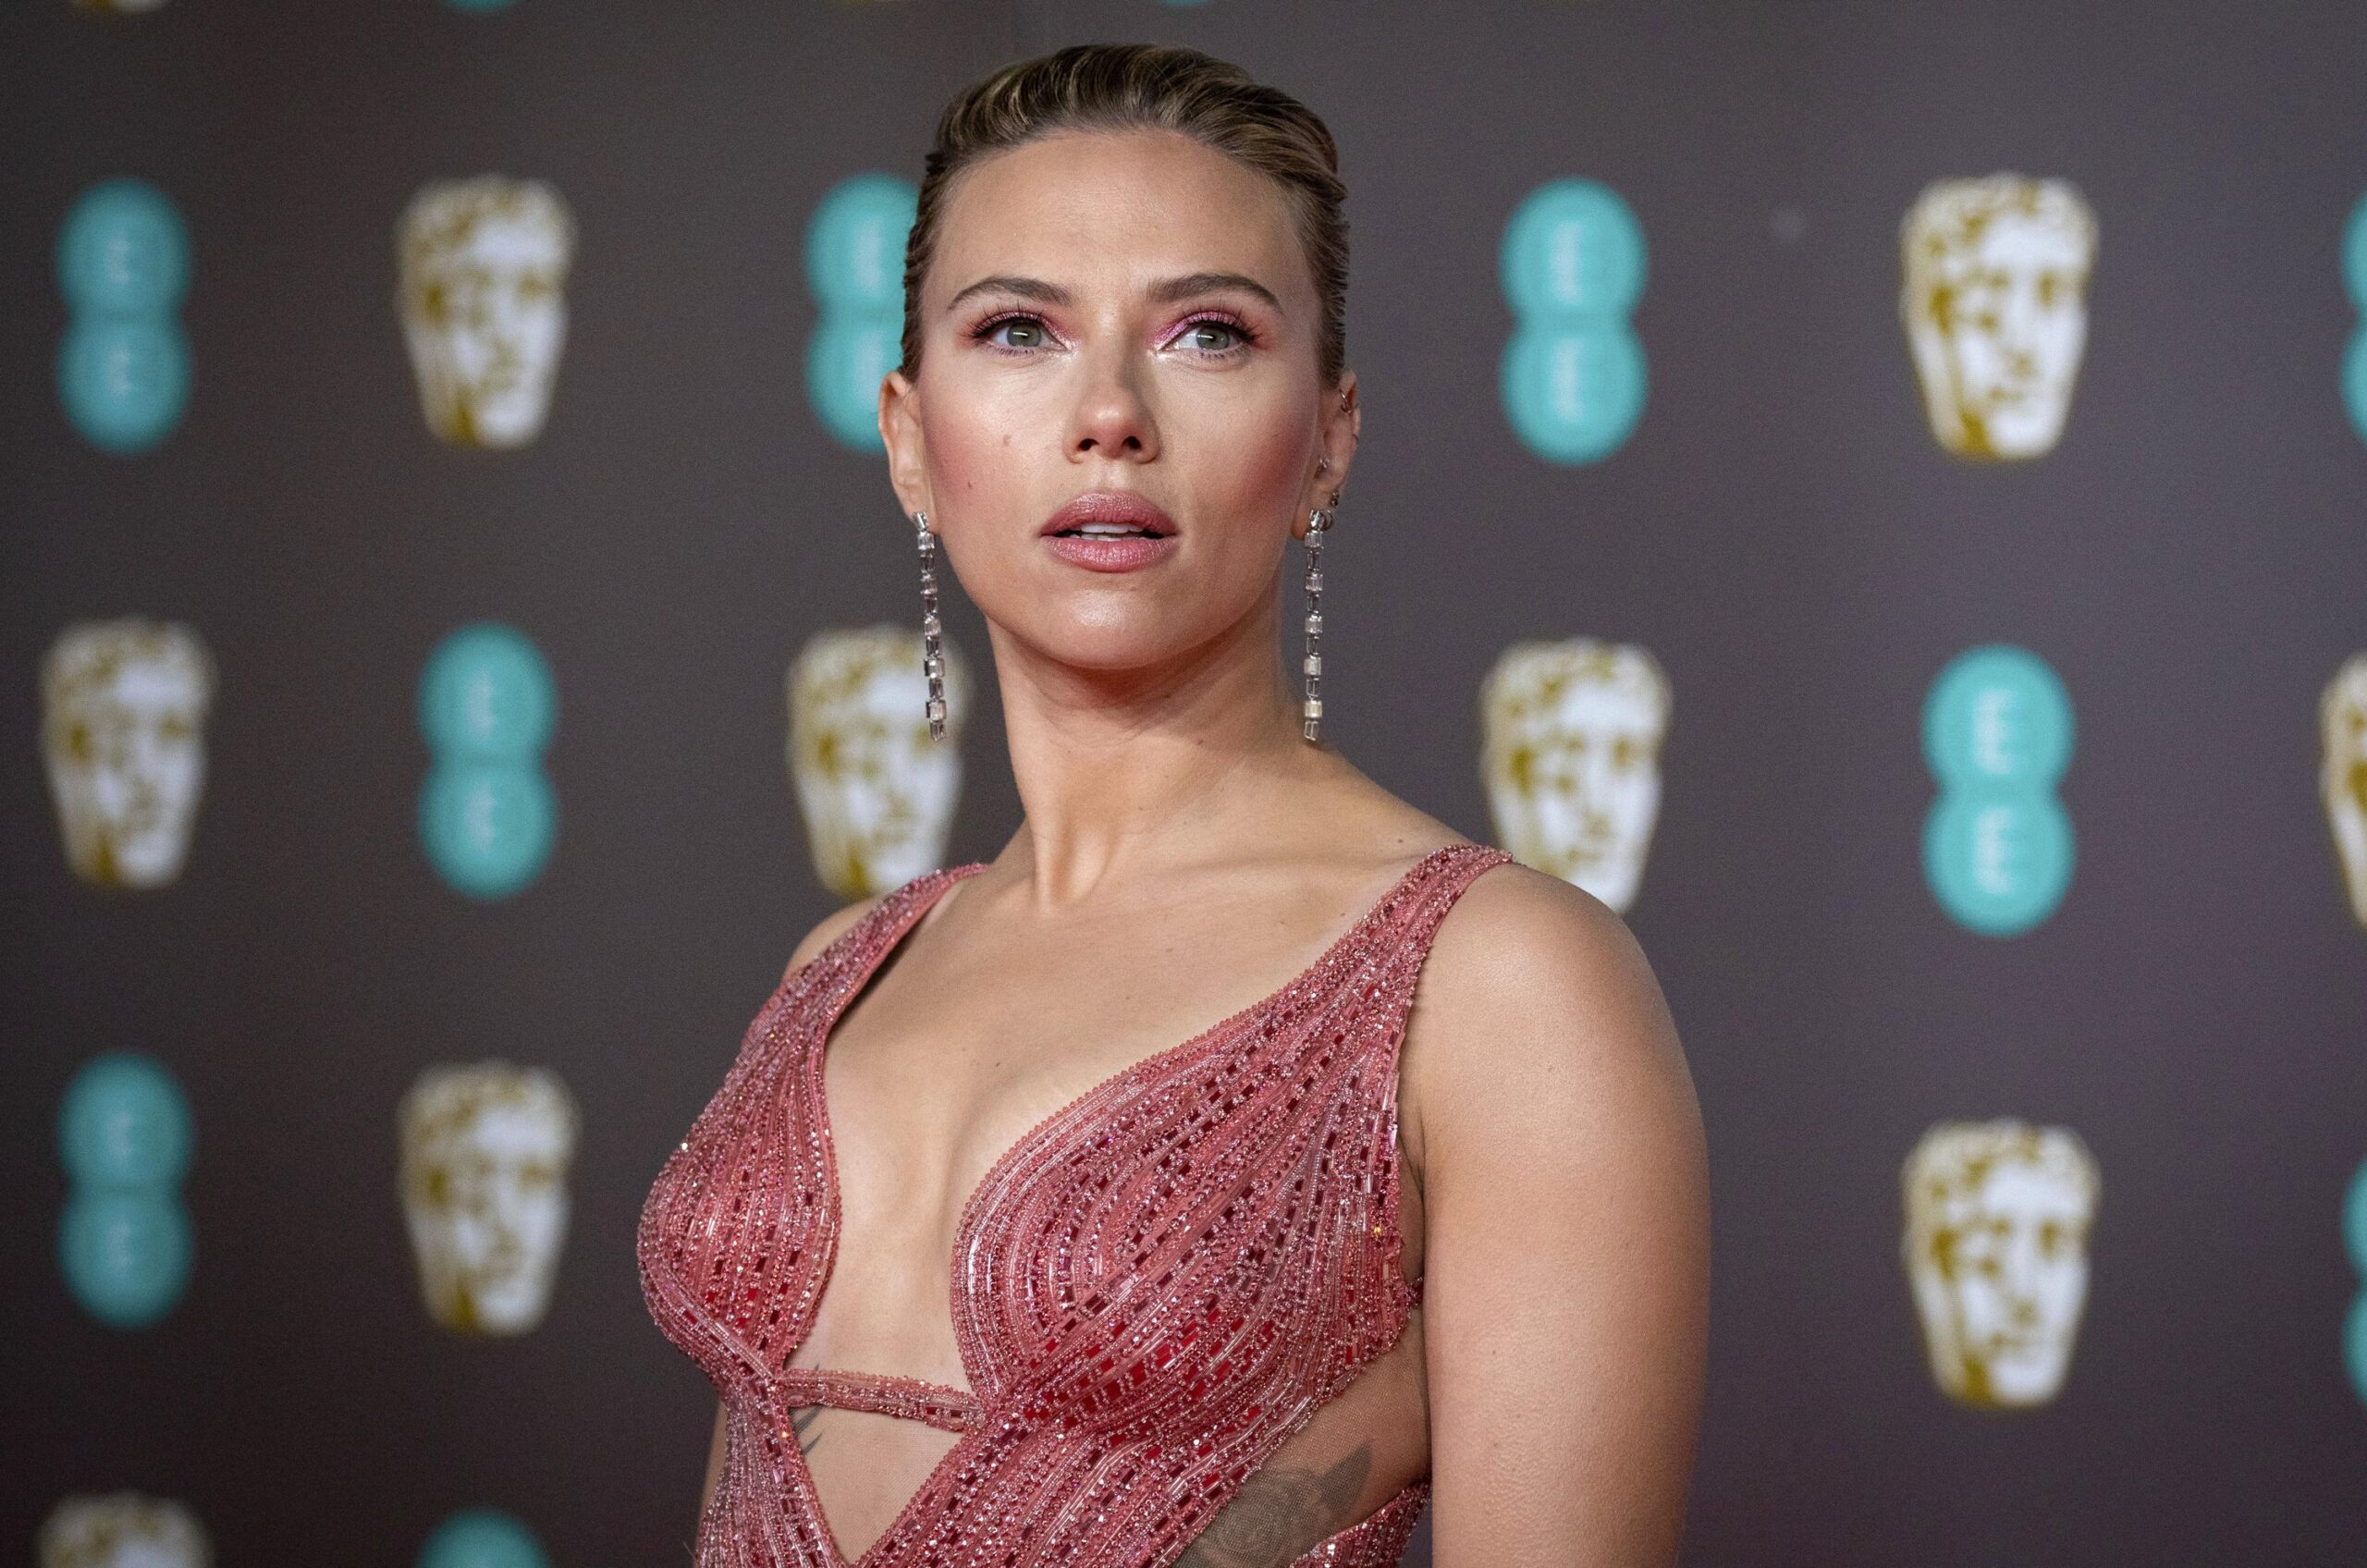 Scarlett Johansson Sues Disney for Breach of Contract During the Release of 'Black Widow'